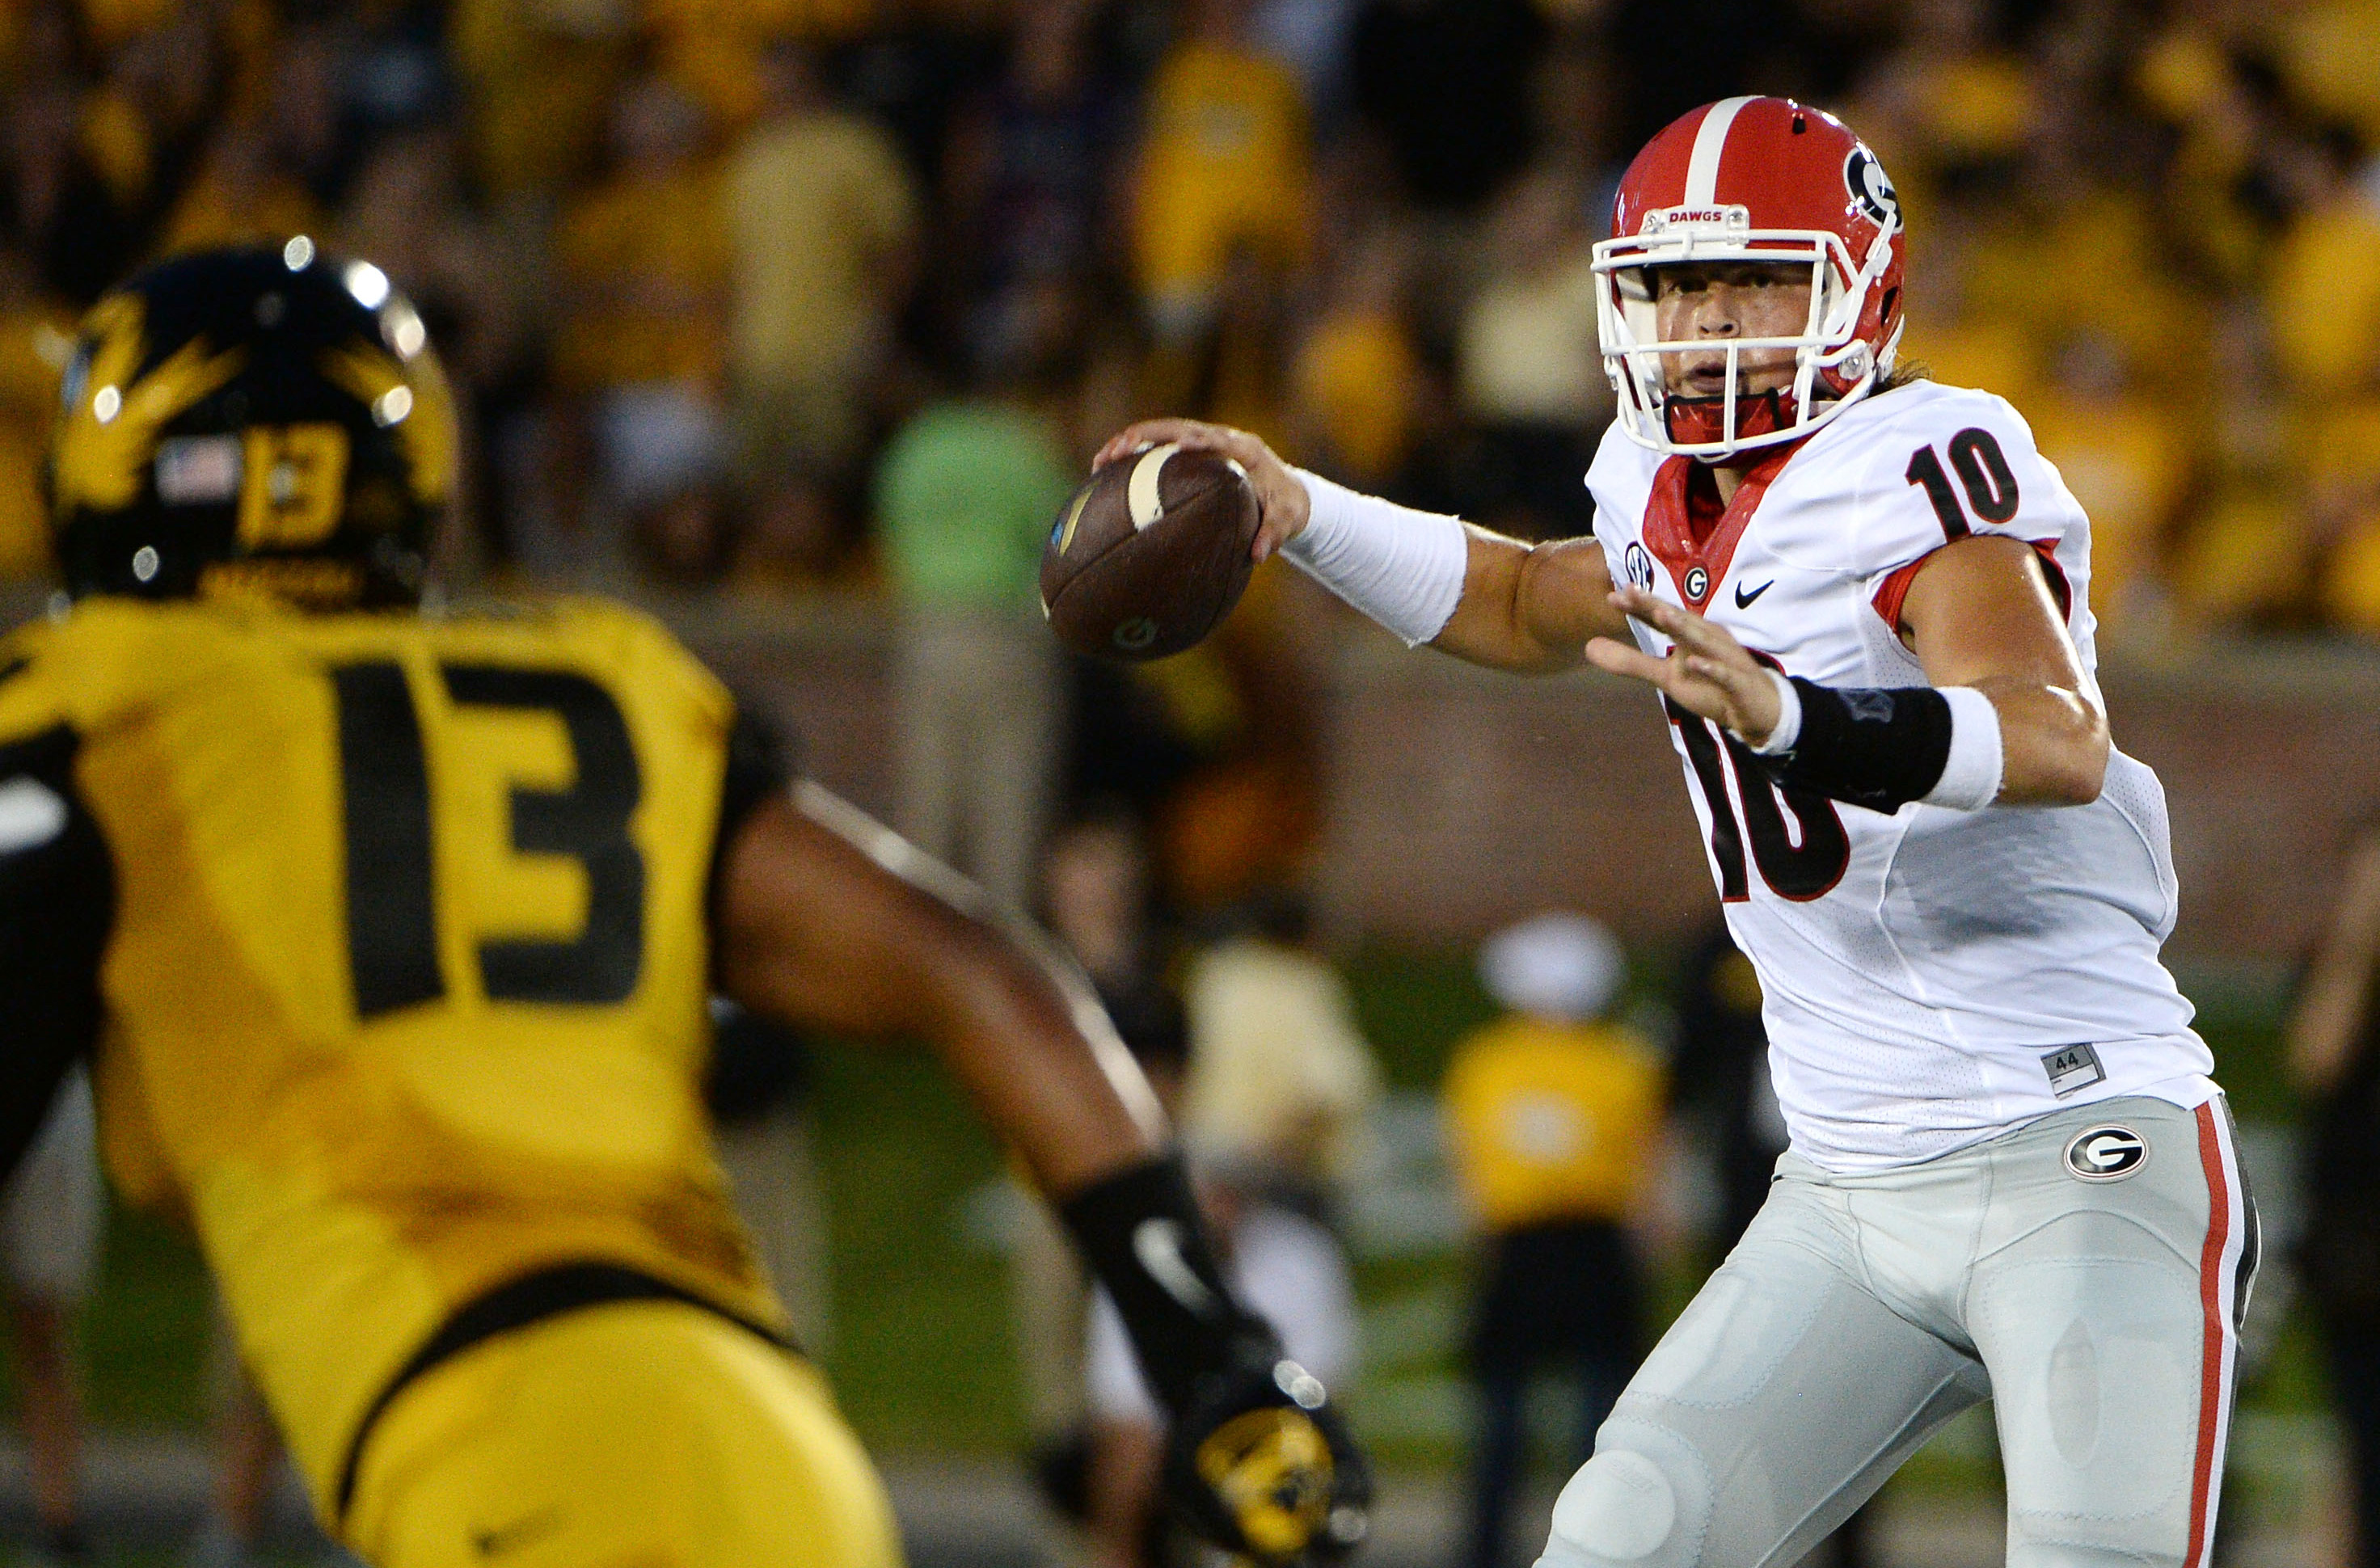 Sep 17, 2016; Columbia, MO, USA; Georgia Bulldogs quarterback Jacob Eason (10) throws the ball against the Missouri Tigers in the first half at Faurot Field. Mandatory Credit: John Rieger-USA TODAY Sports